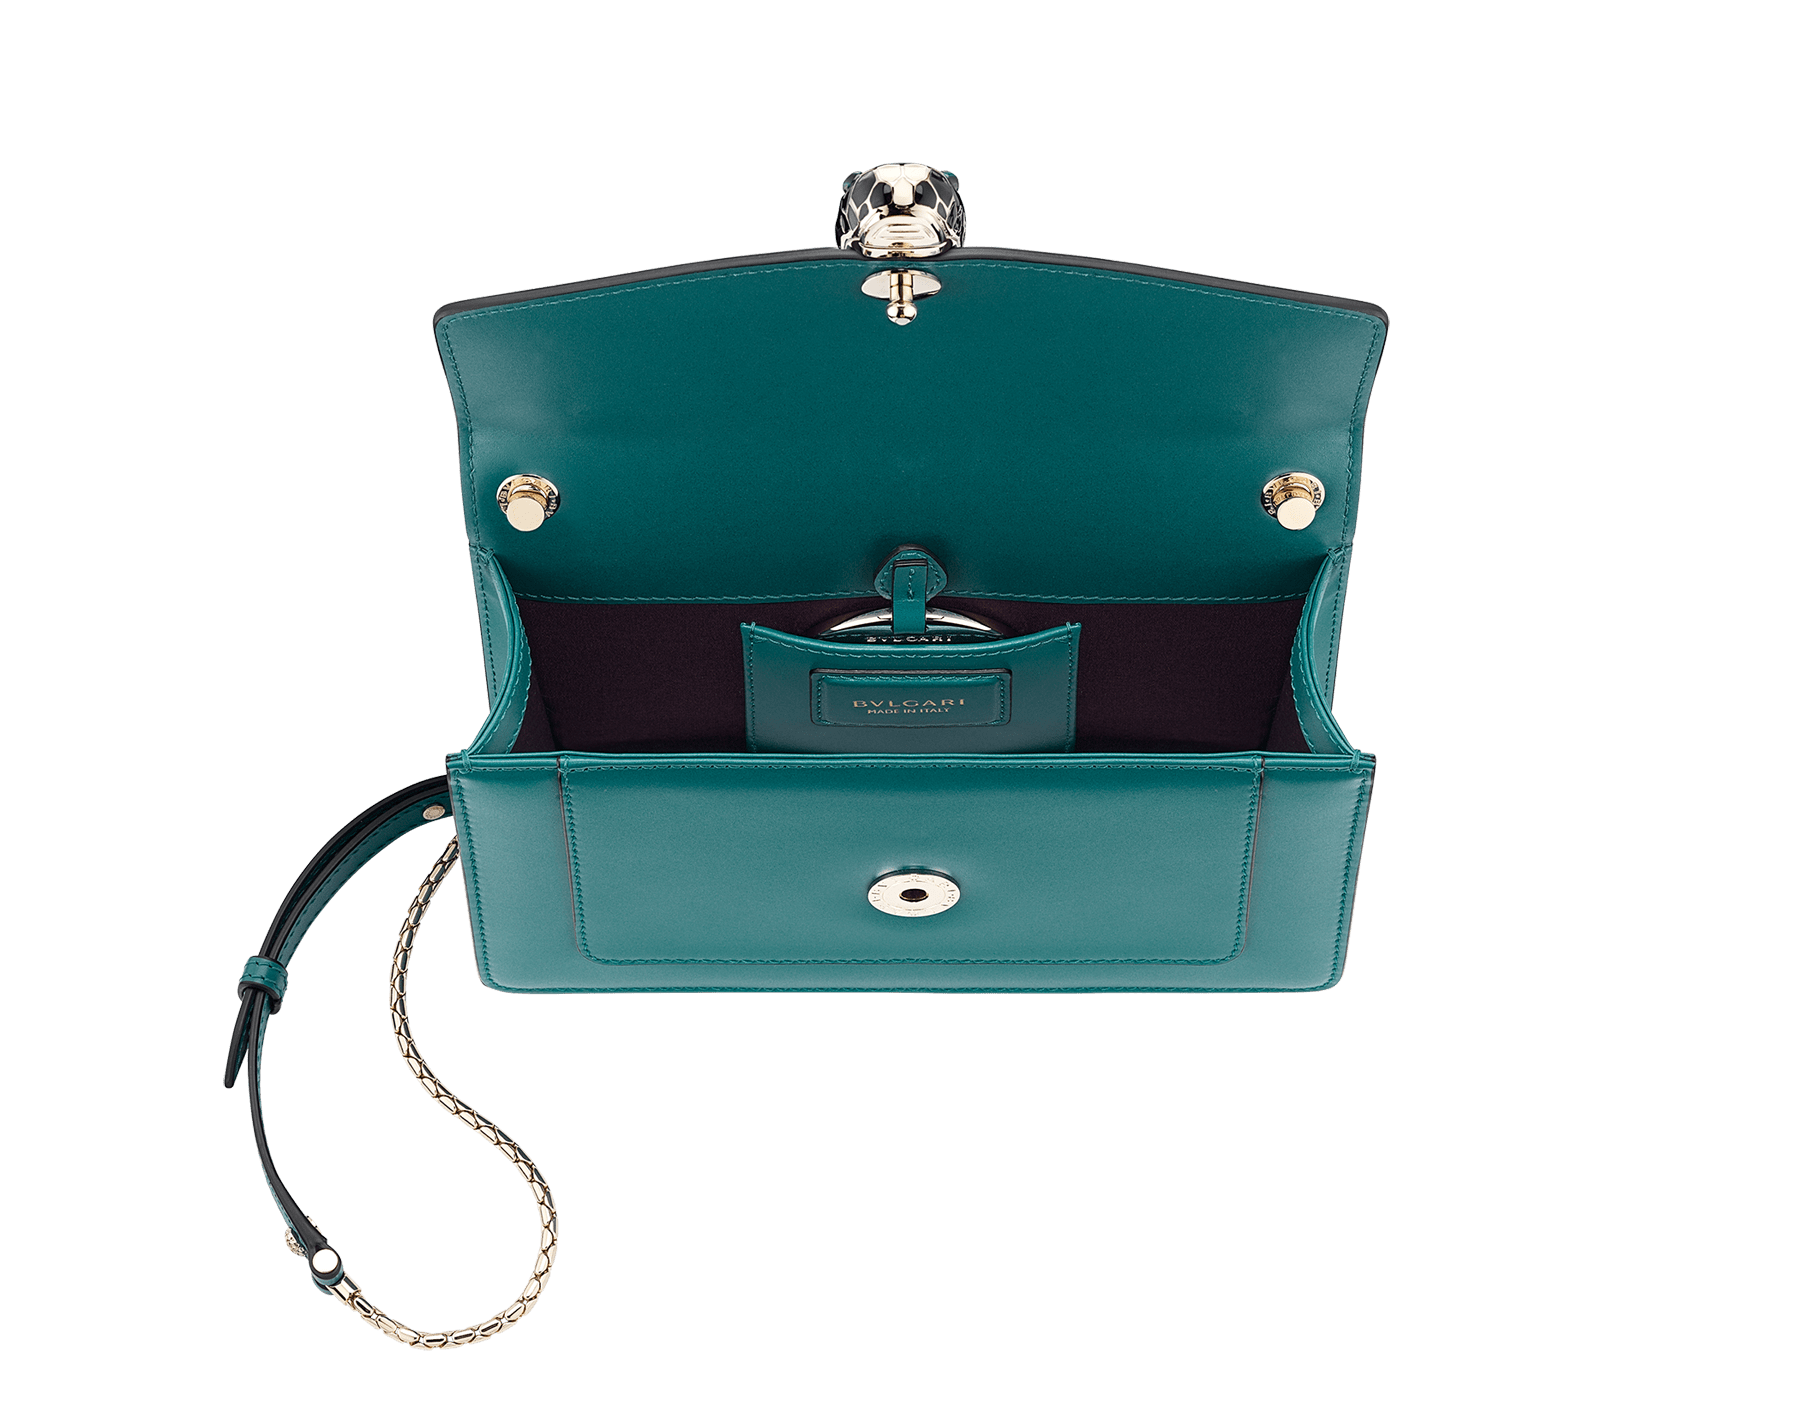 Serpenti Forever crossbody bag in sea star coral smooth calf leather. Snakehead closure in light gold plated brass decorated with black and white enamel, and green malachite eyes. 625-BCLc image 4